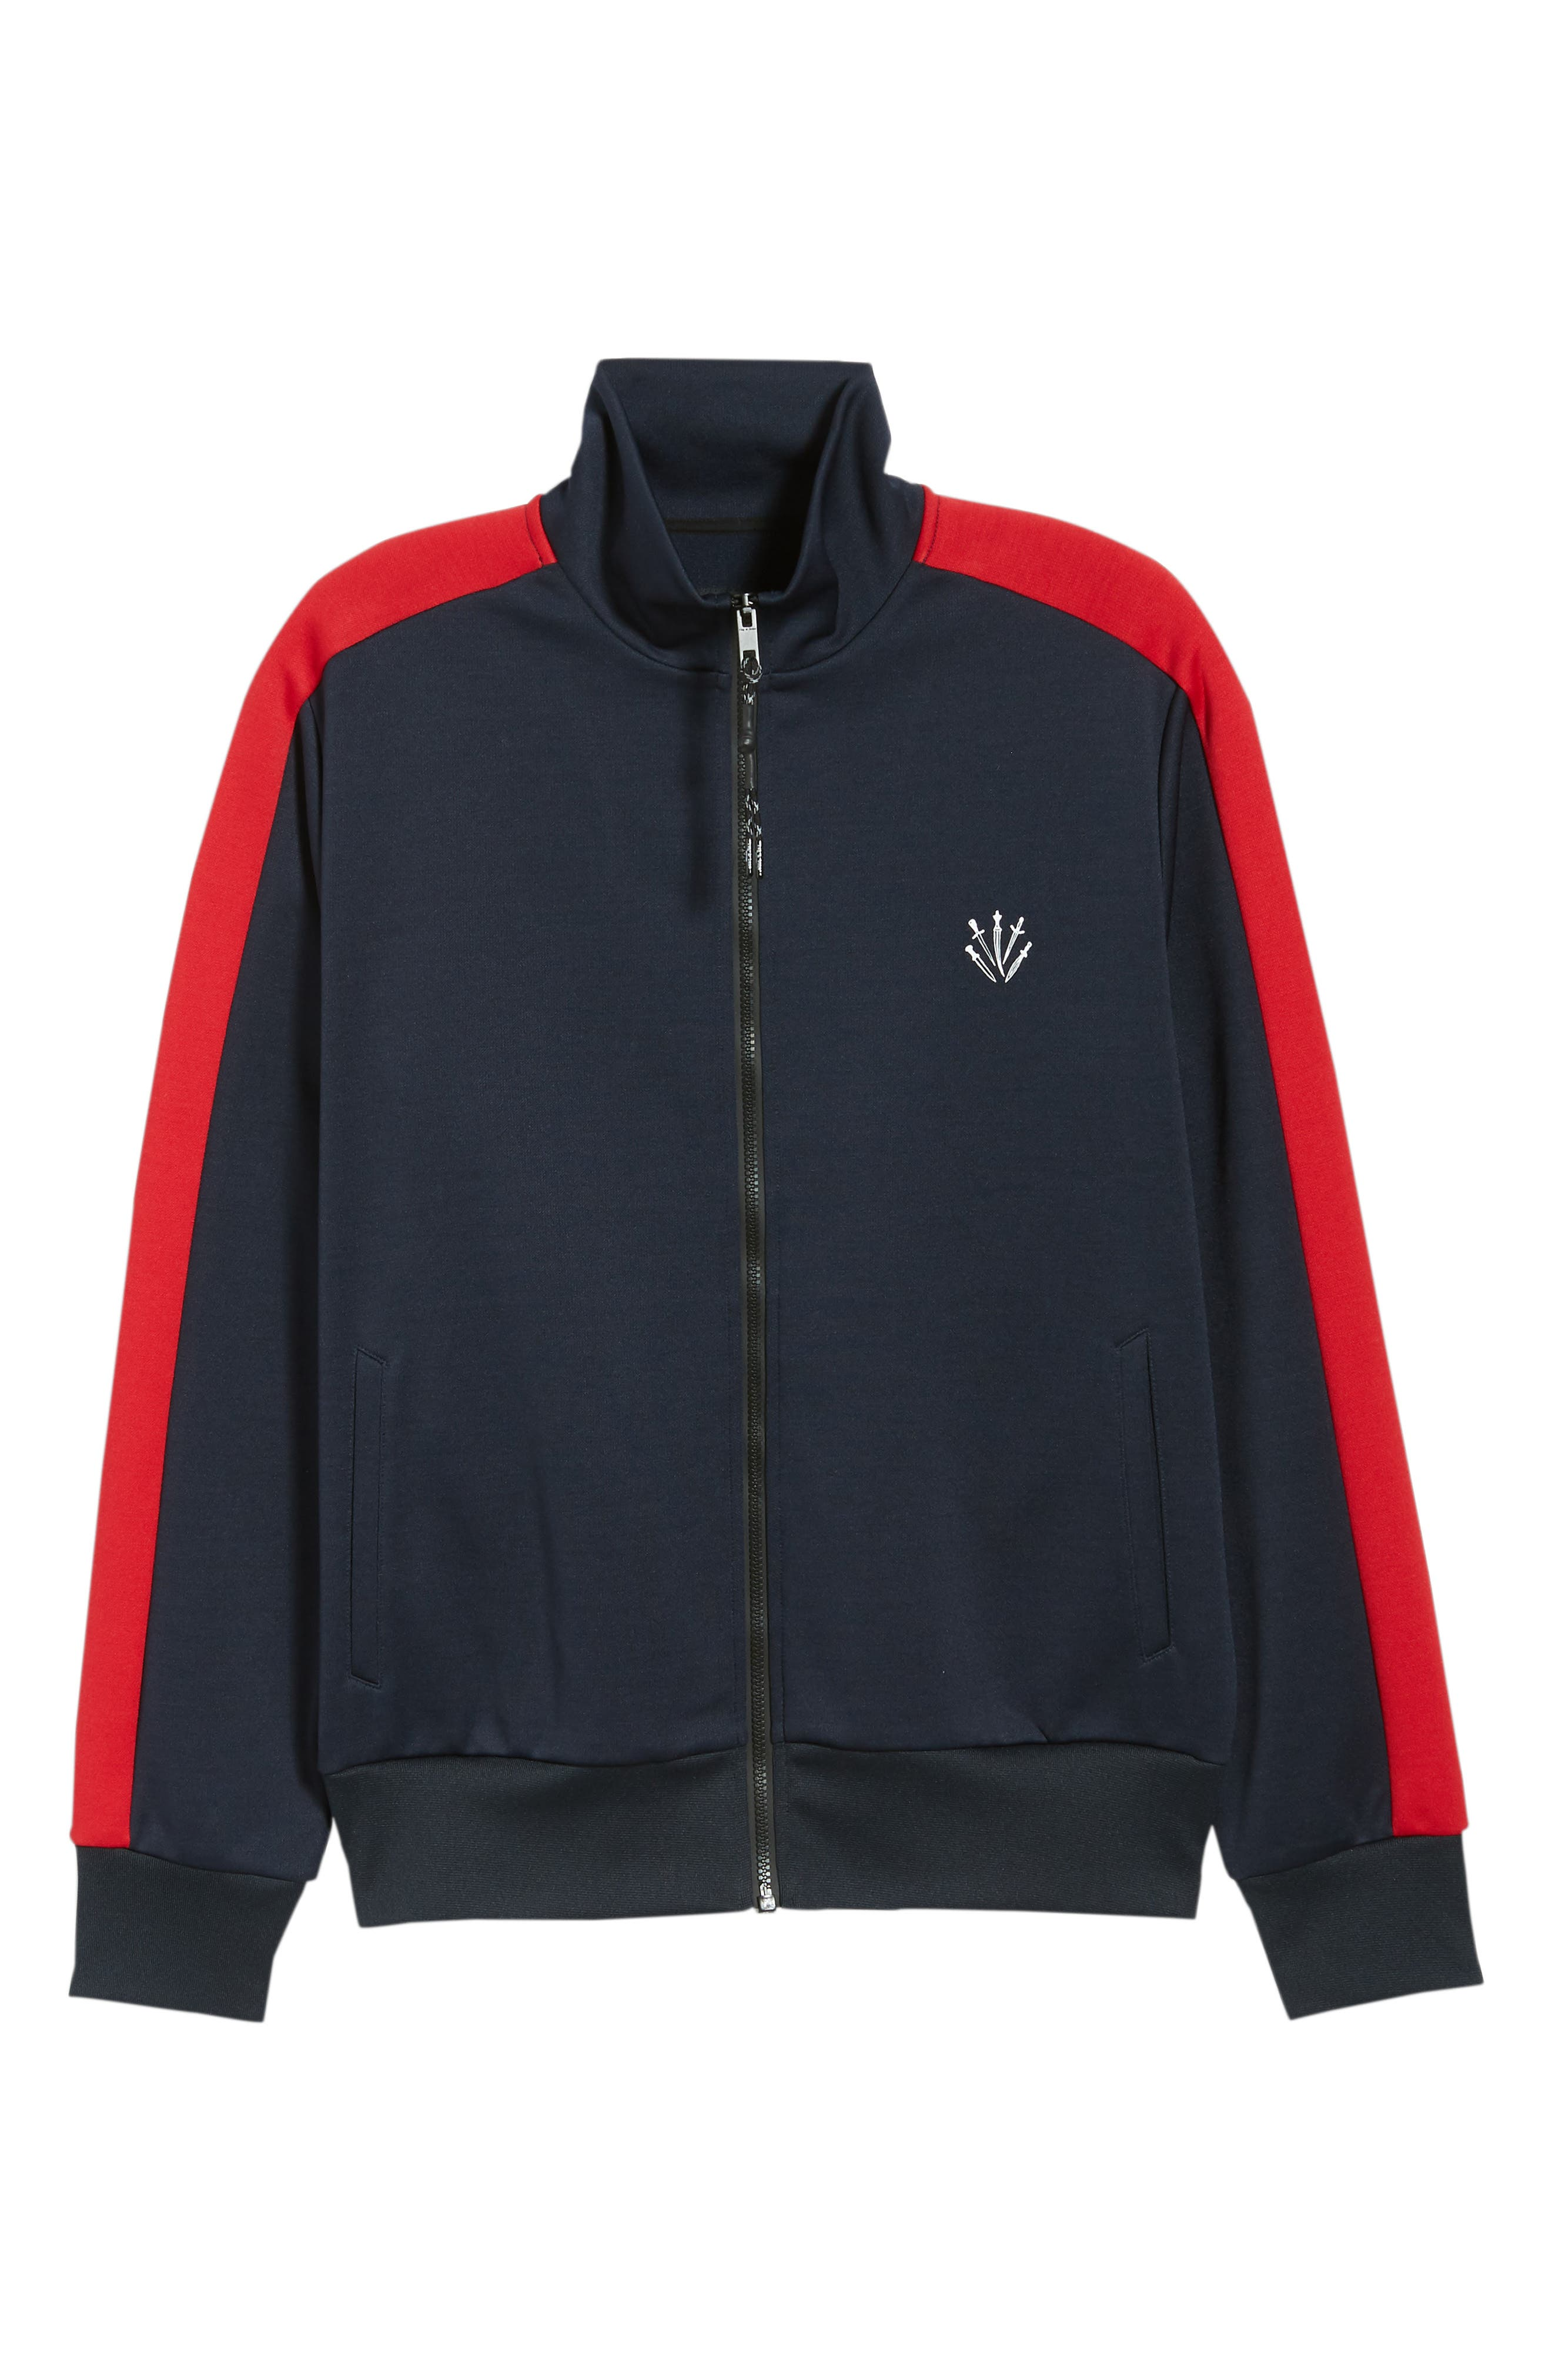 Club Slim Track Jacket,                             Alternate thumbnail 5, color,                             NAVY/ RED